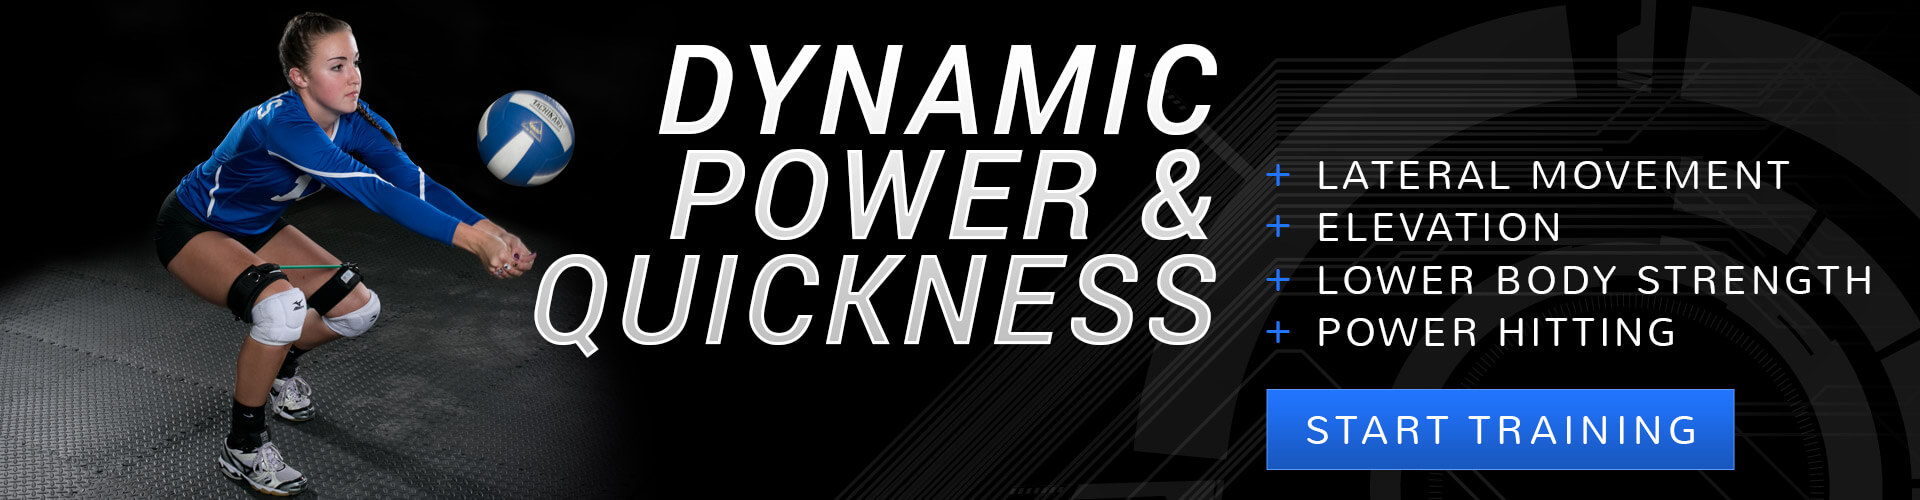 Get dynamic power and quickness in volleyball when you train with Kinetic Bands. Improve multi-directional speed, higher vertical jumps, lower body strength, power hitting.